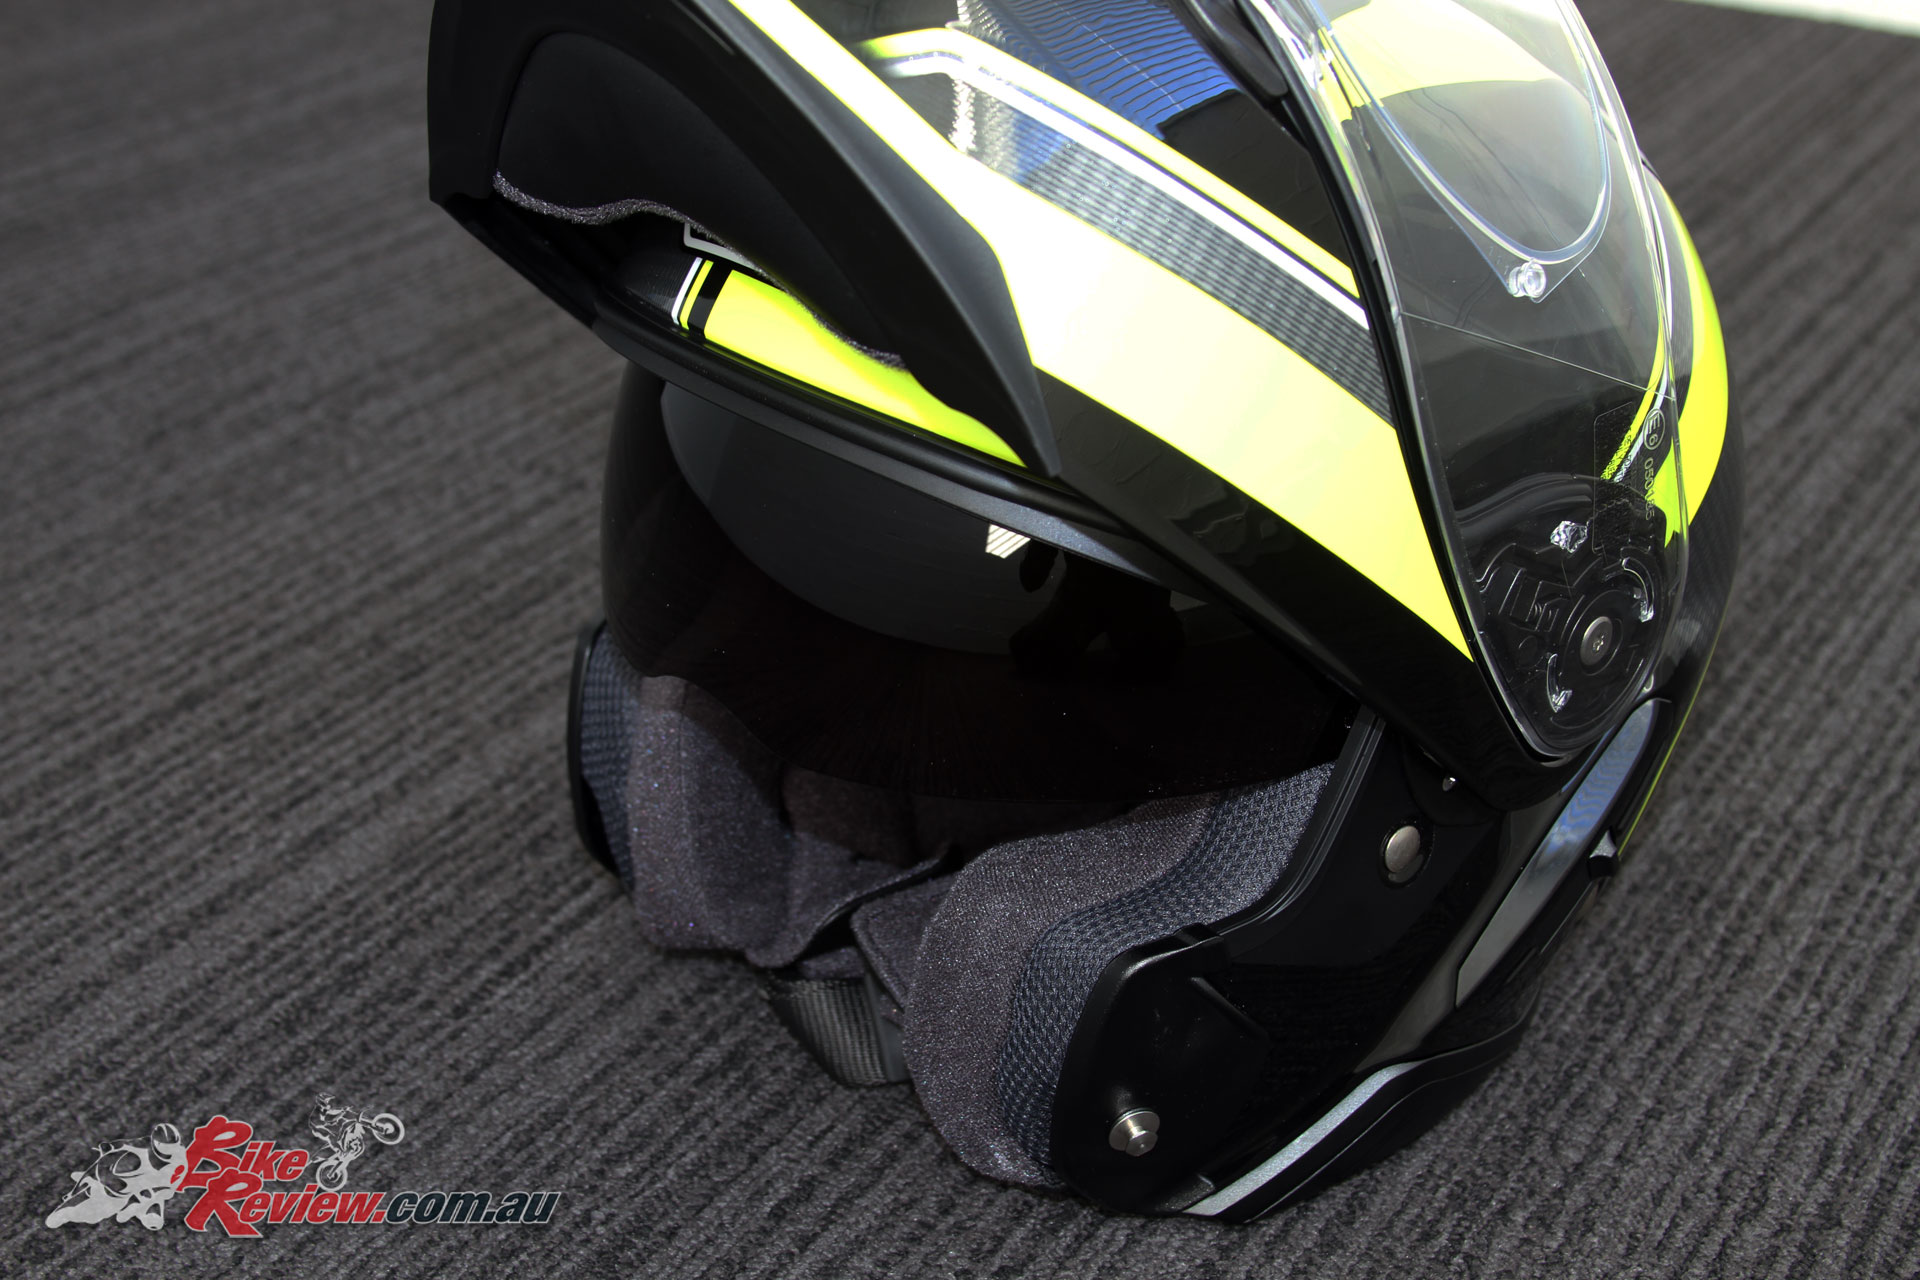 Shoei Neotec II with front up and internal visor down